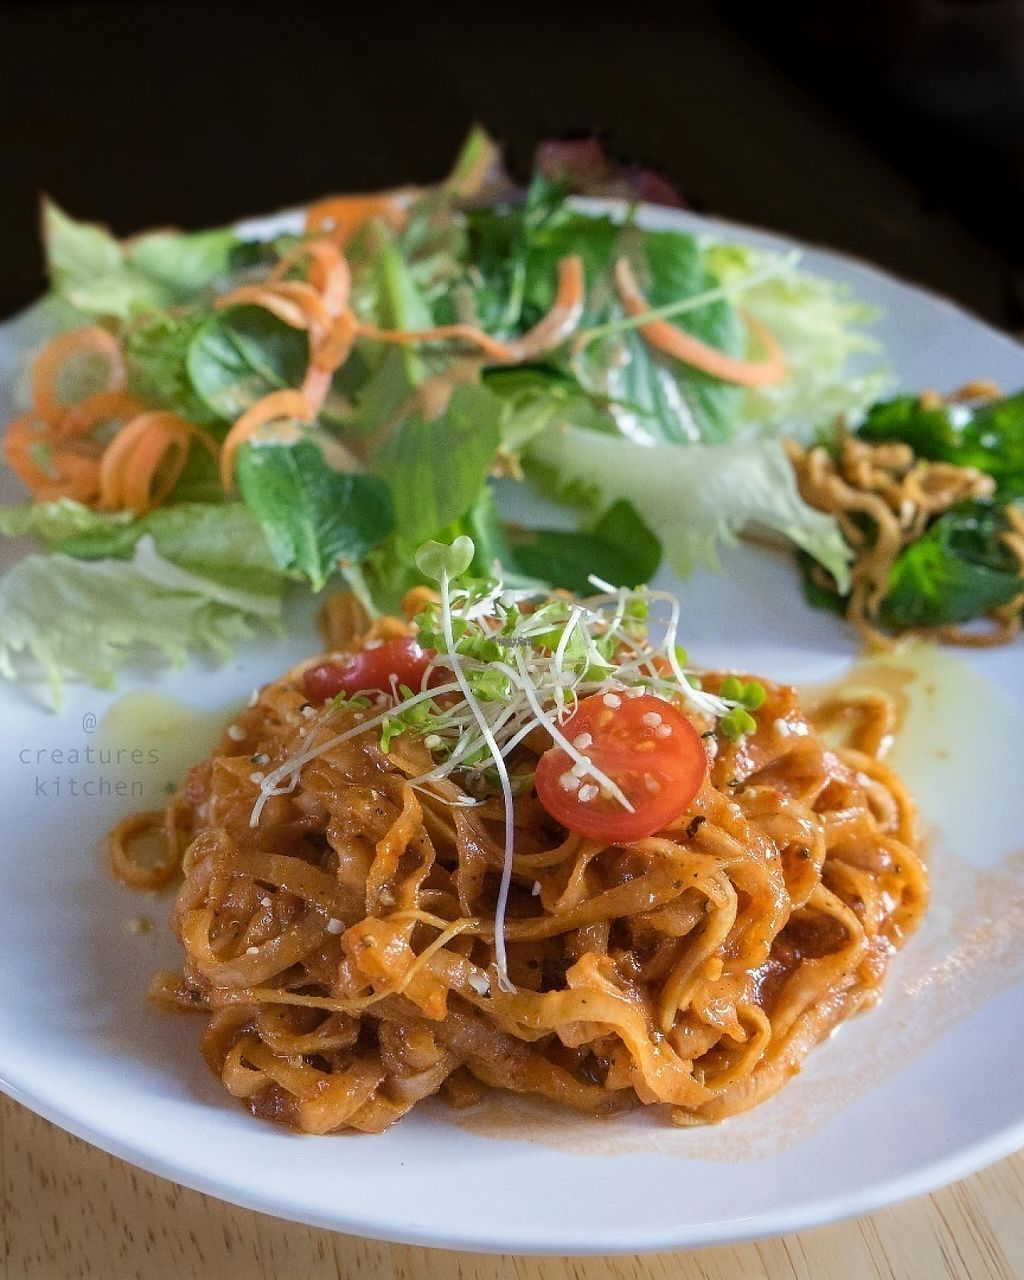 """Photo of Raw8 Cafe  by <a href=""""/members/profile/EmmaCebuliak"""">EmmaCebuliak</a> <br/>Raw pasta with tomato sauce and salad.  <br/> January 27, 2017  - <a href='/contact/abuse/image/30371/217773'>Report</a>"""